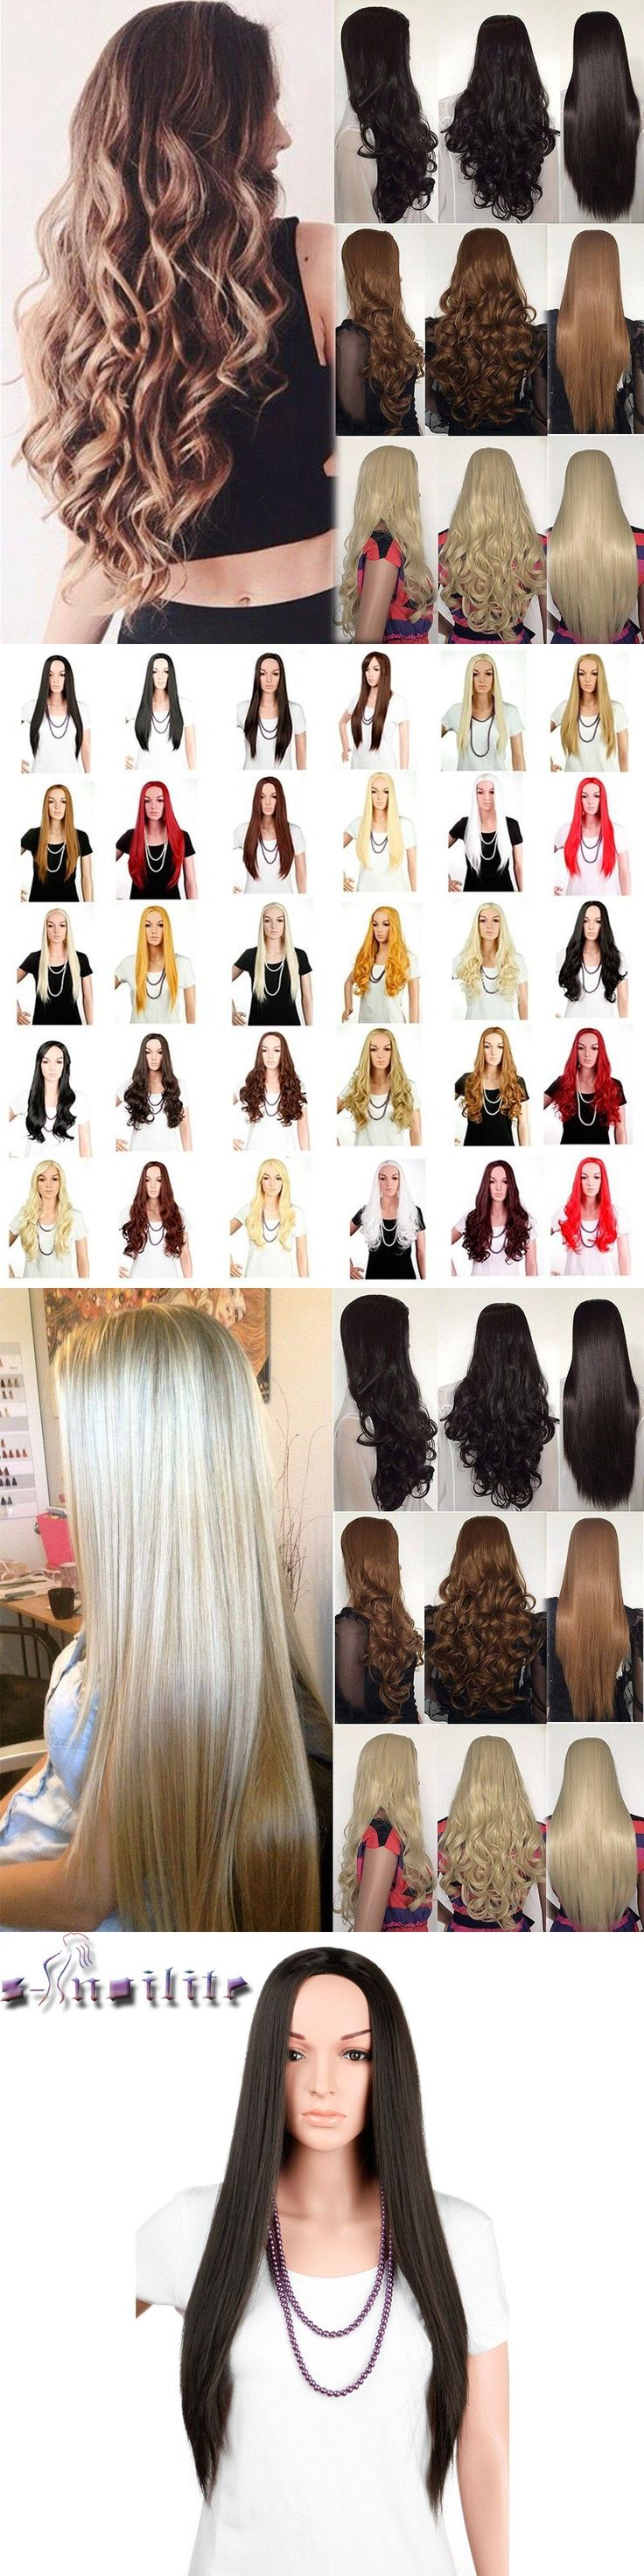 S-noilite 25inches 300g Clip In Hair Piece Long Half Wig Black Blonde Brown Ombre Straight 3/4 Full Wigs Synthetic Fiber